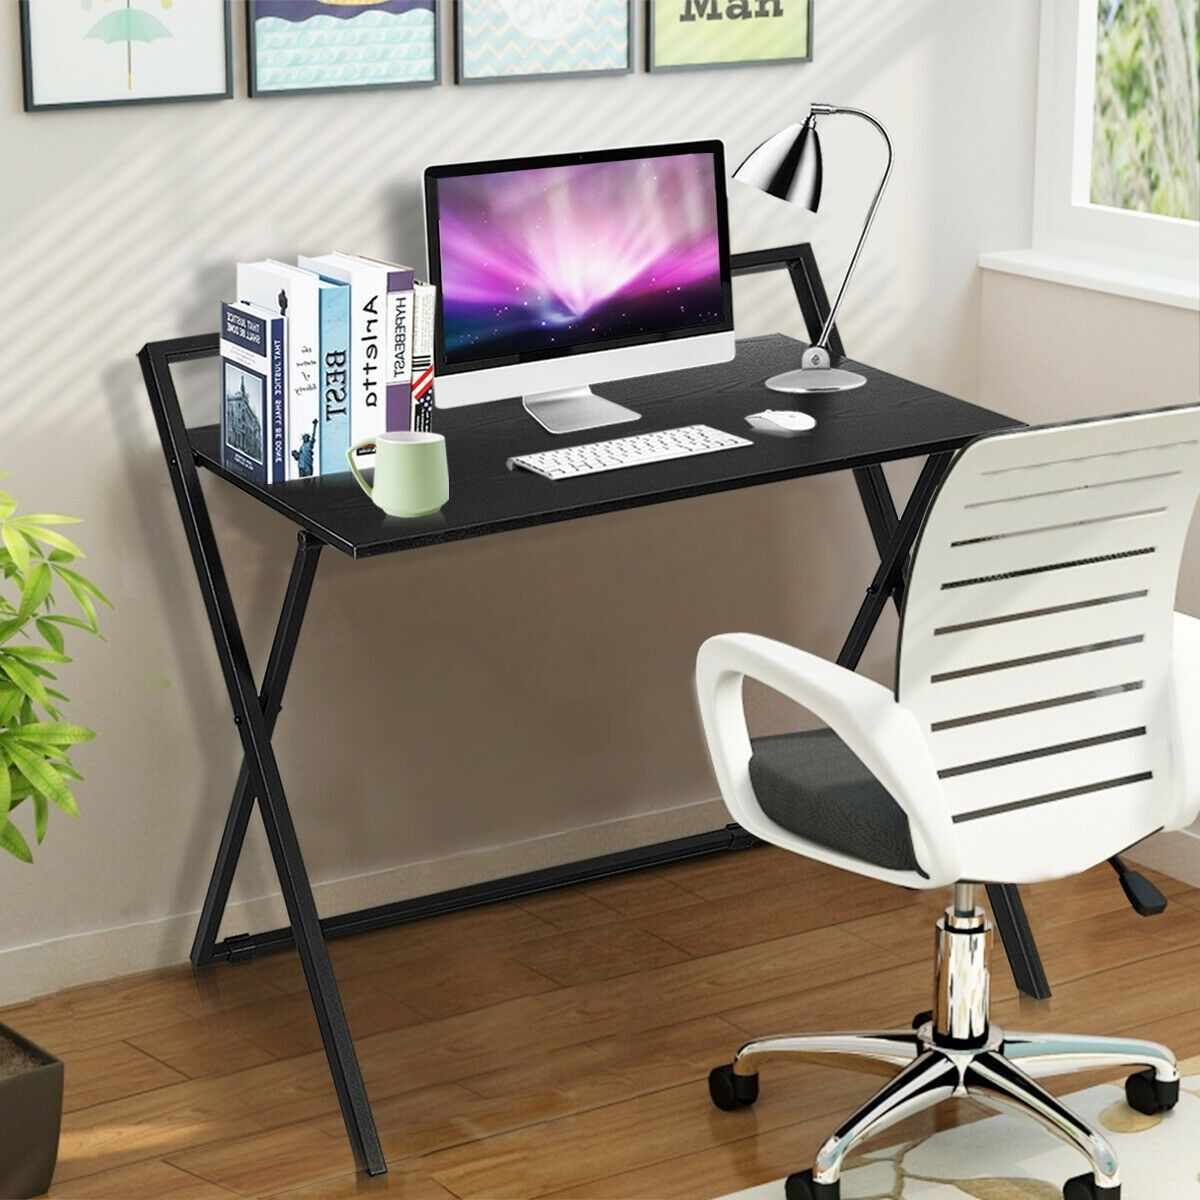 Folding Simple Pc Laptop Writing Table Computer Desk 85 95 Free Shipping This Is The Portable Fold Folding Computer Desk Computer Table Simple Computer Desk